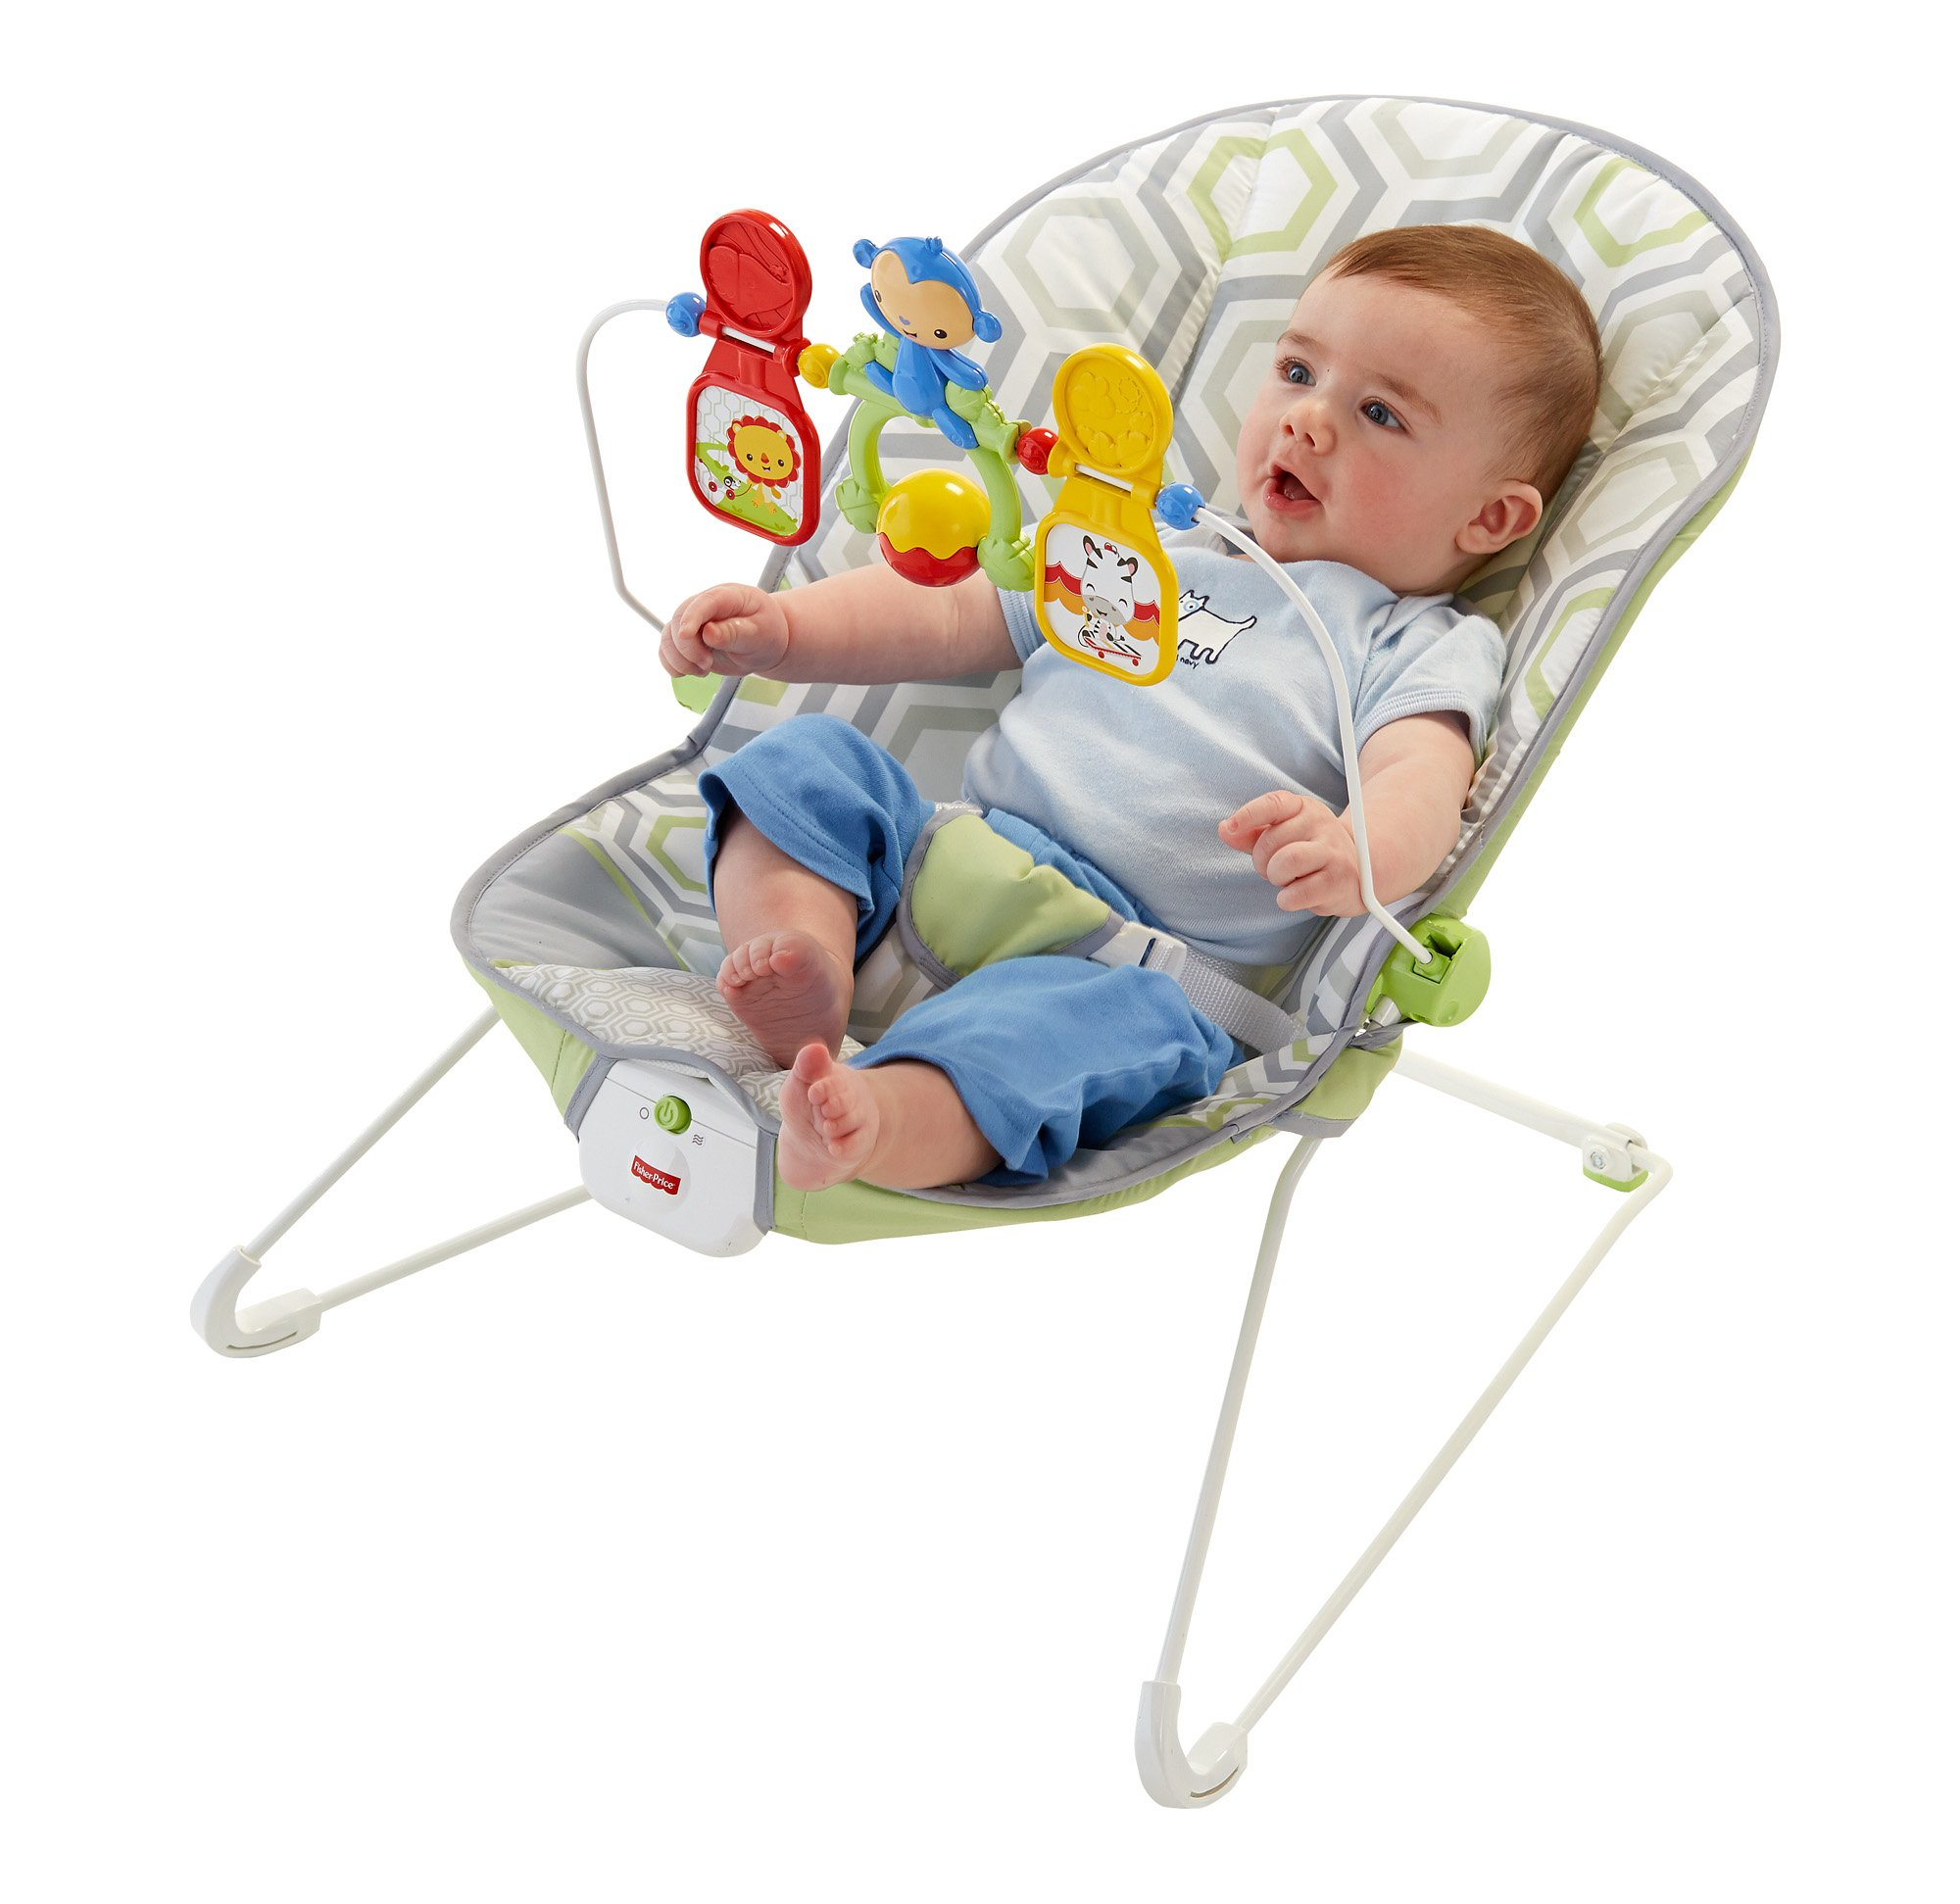 Bouncy seat for soothing and entertaining Switch on calming vibrations to help soothe Removable ...